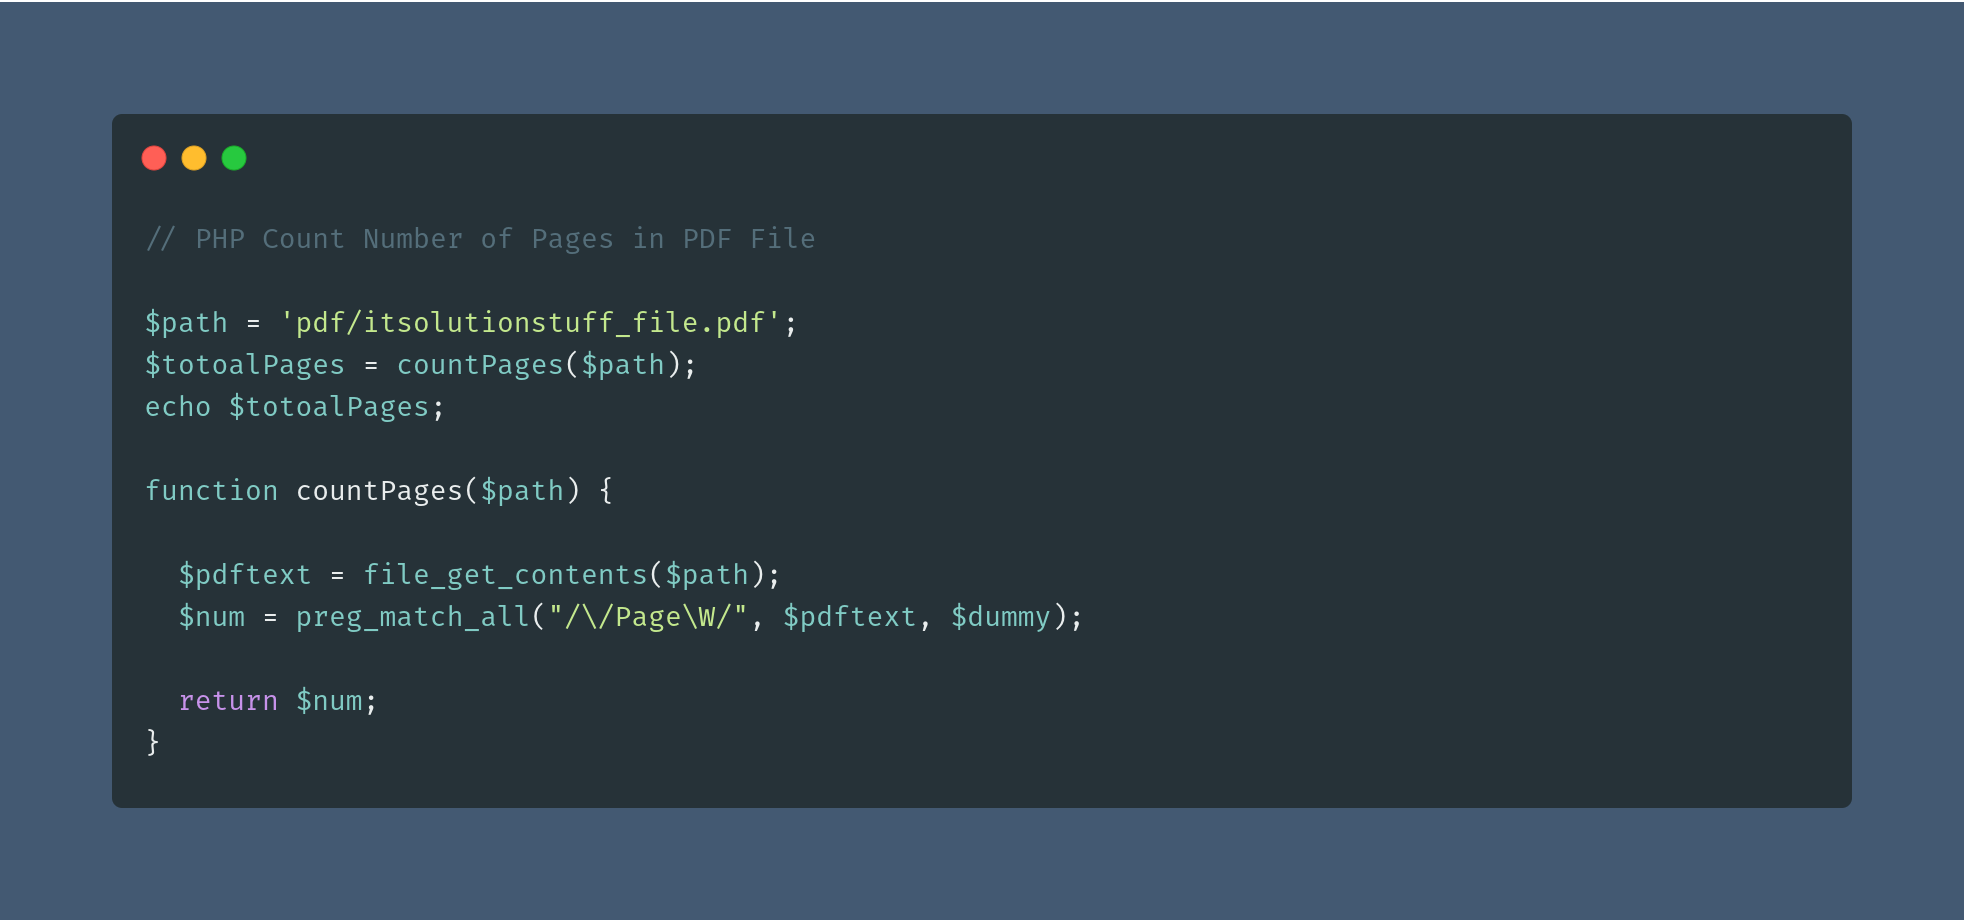 PHP Count Number of Pages in PDF File